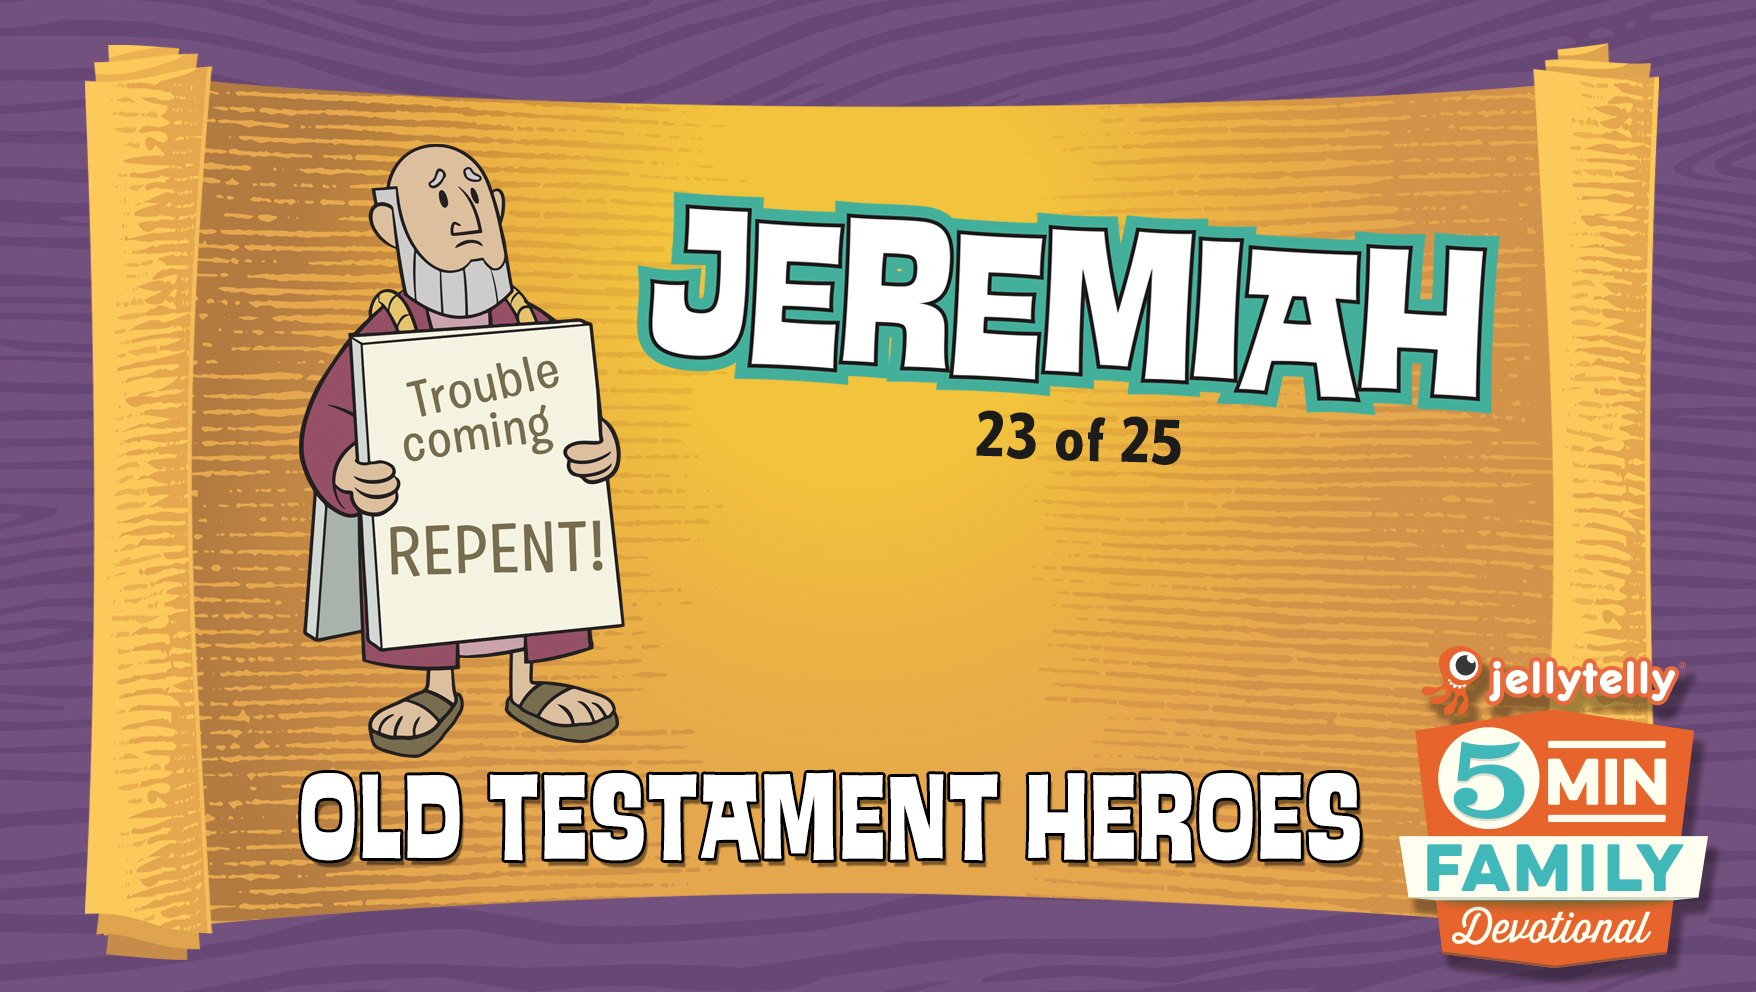 Jeremiah: Old Testament Heroes - 5 Minute Family Devotional